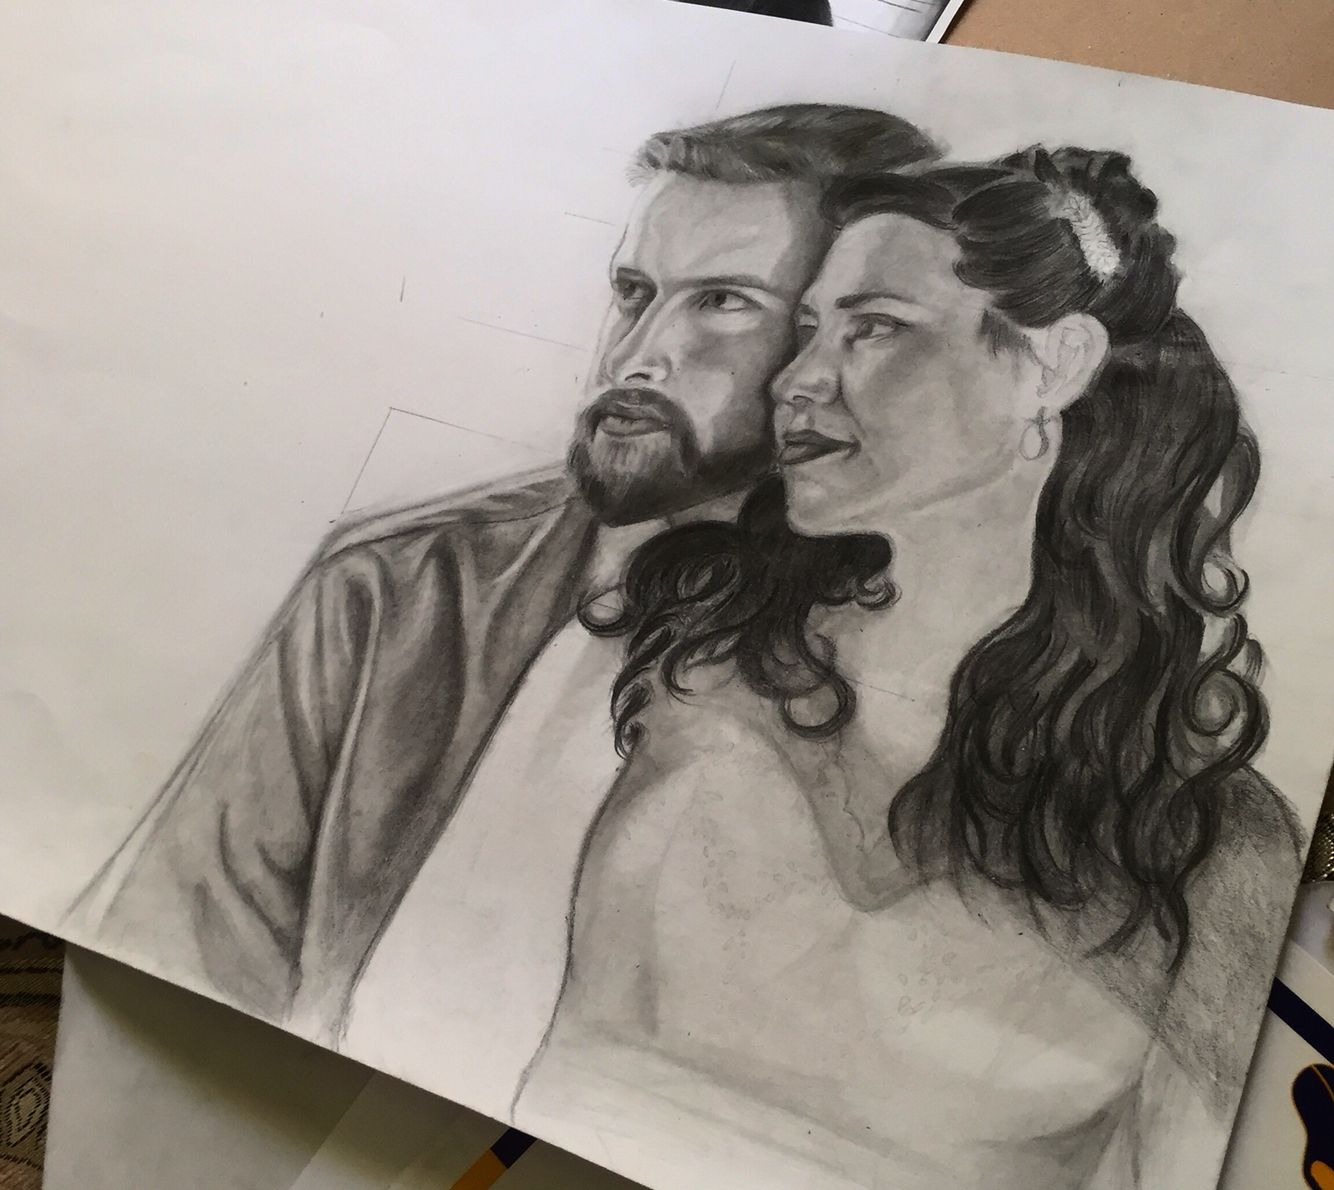 Painting art pencil black and white process love couple